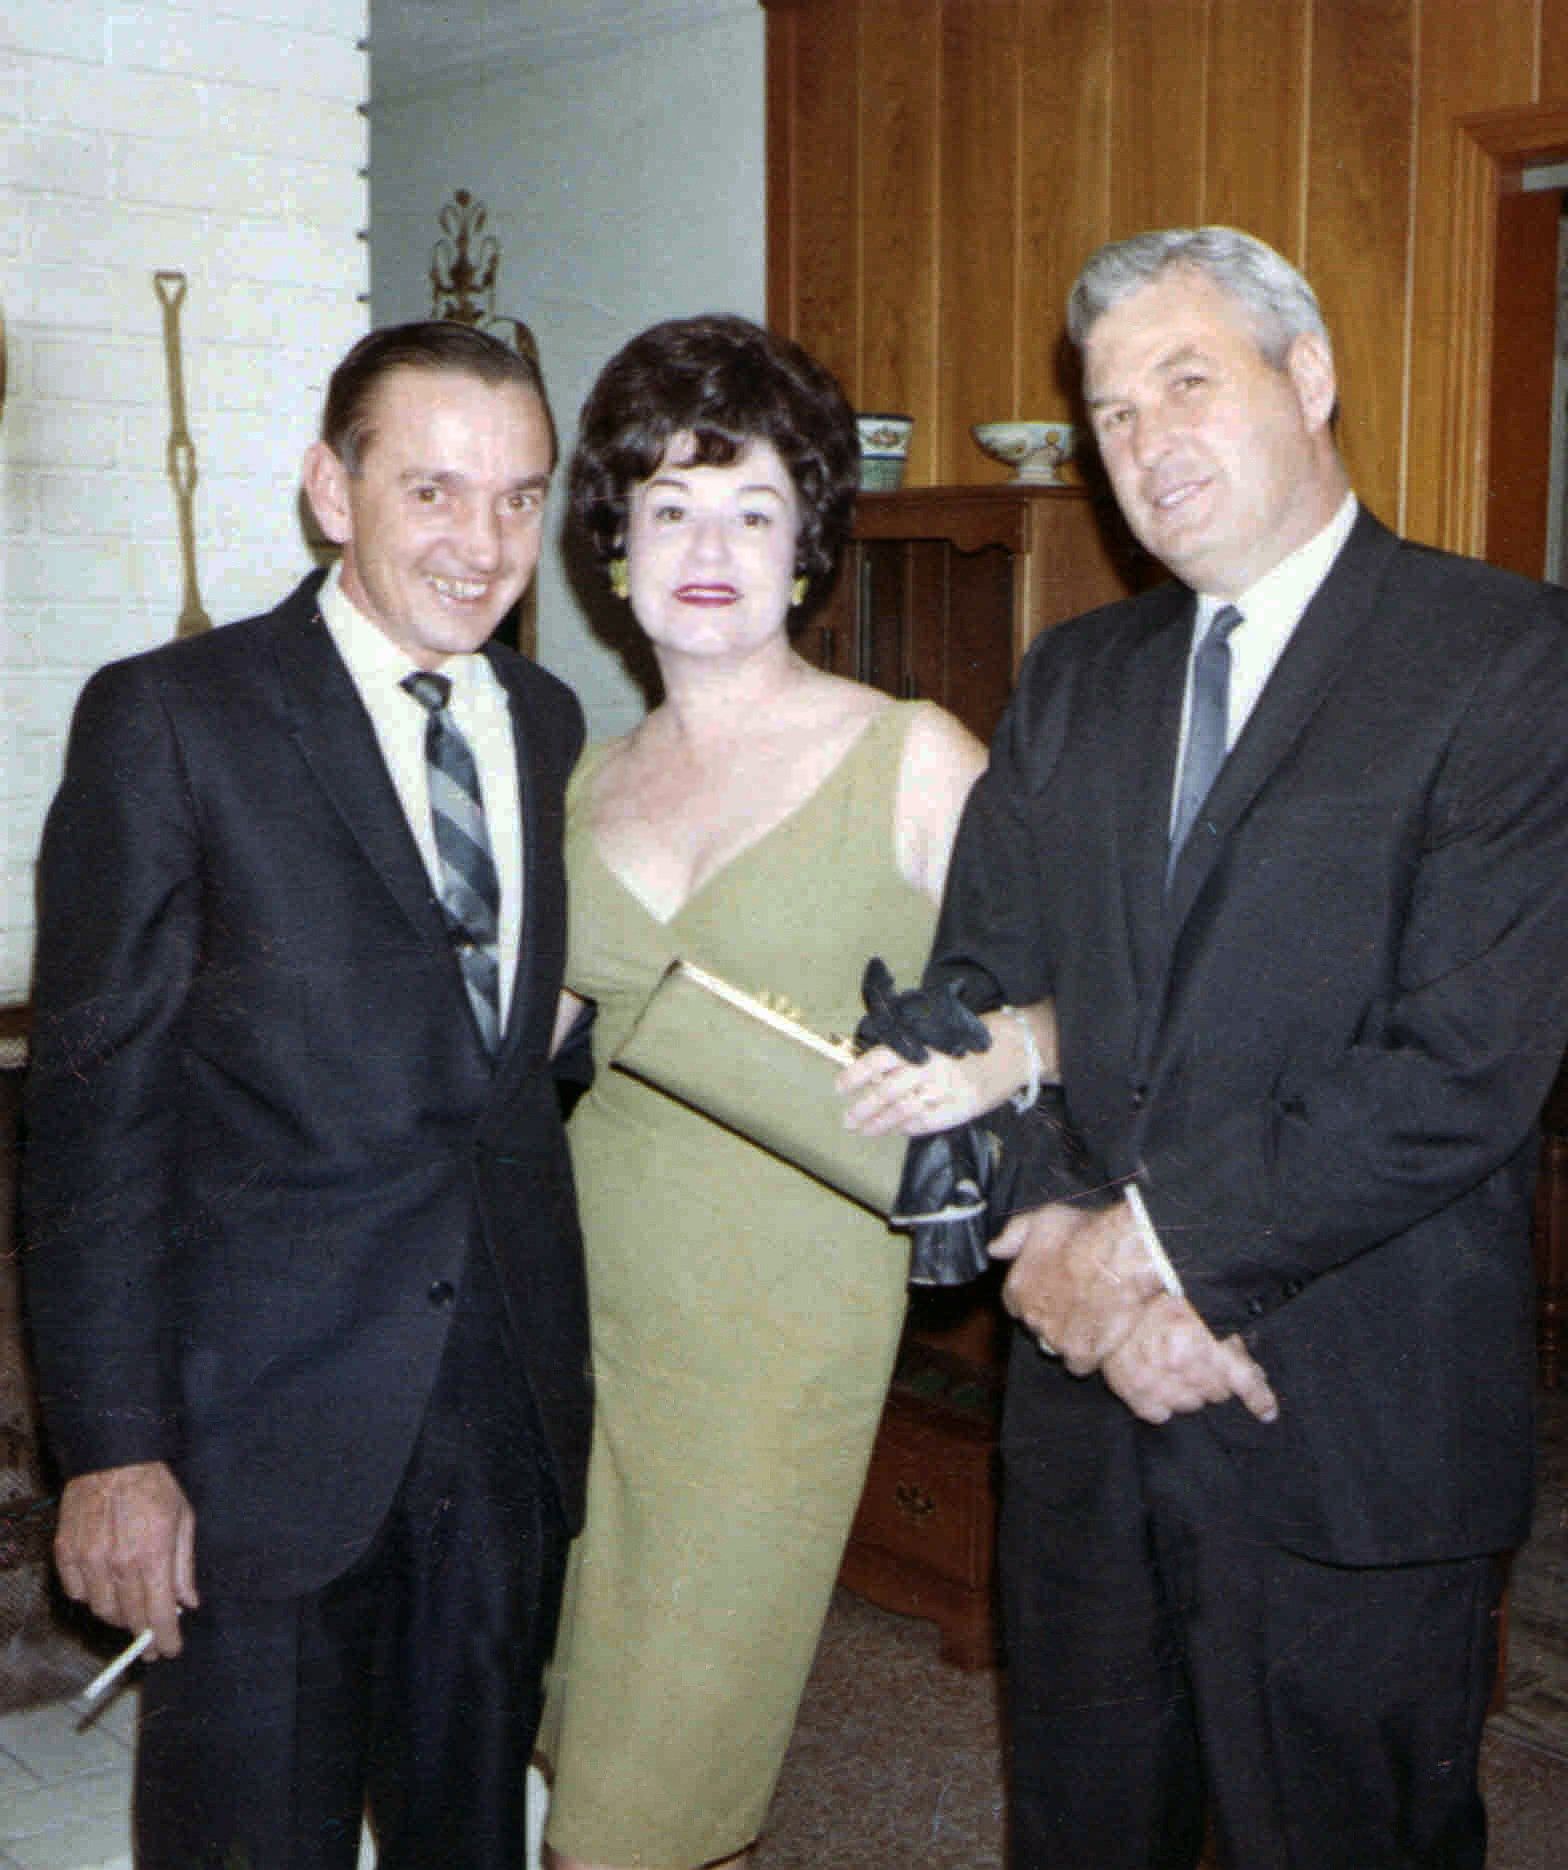 Buddy Alston, Connie OOOllalla and Jack